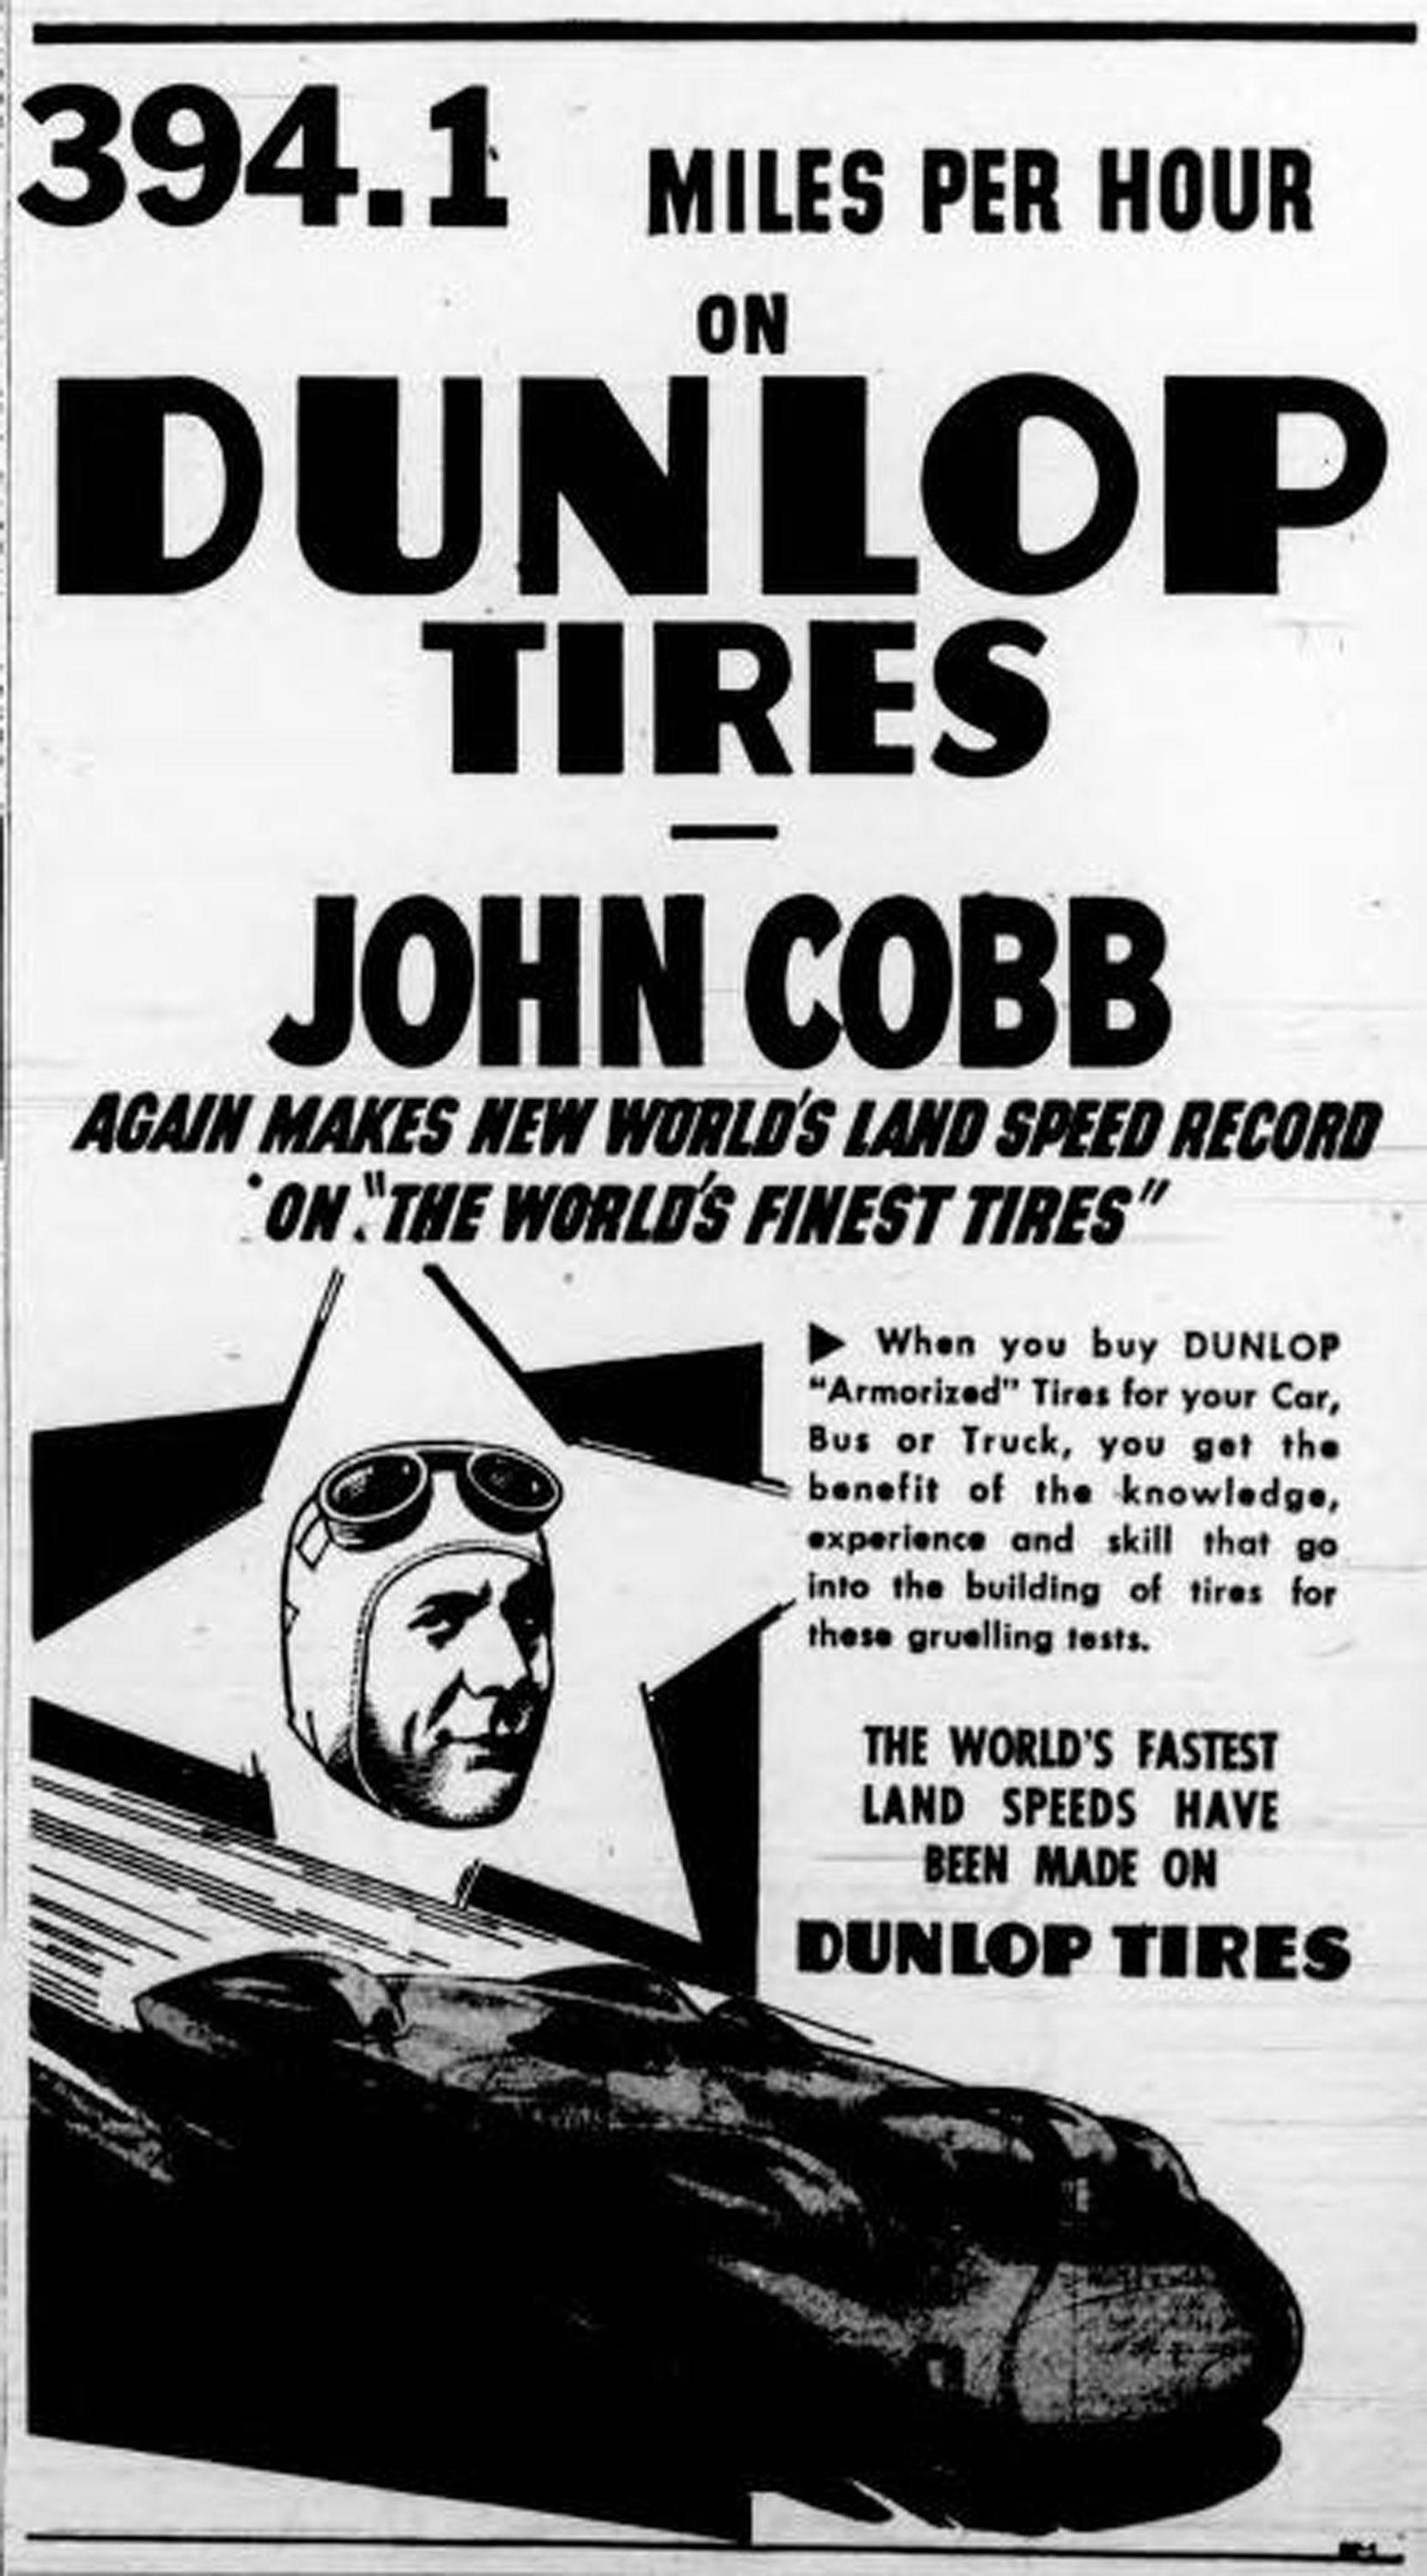 1947 advertisement for Dunlop Tires, featuring British racing driver John Cobb (West Coast Driver Training collection)